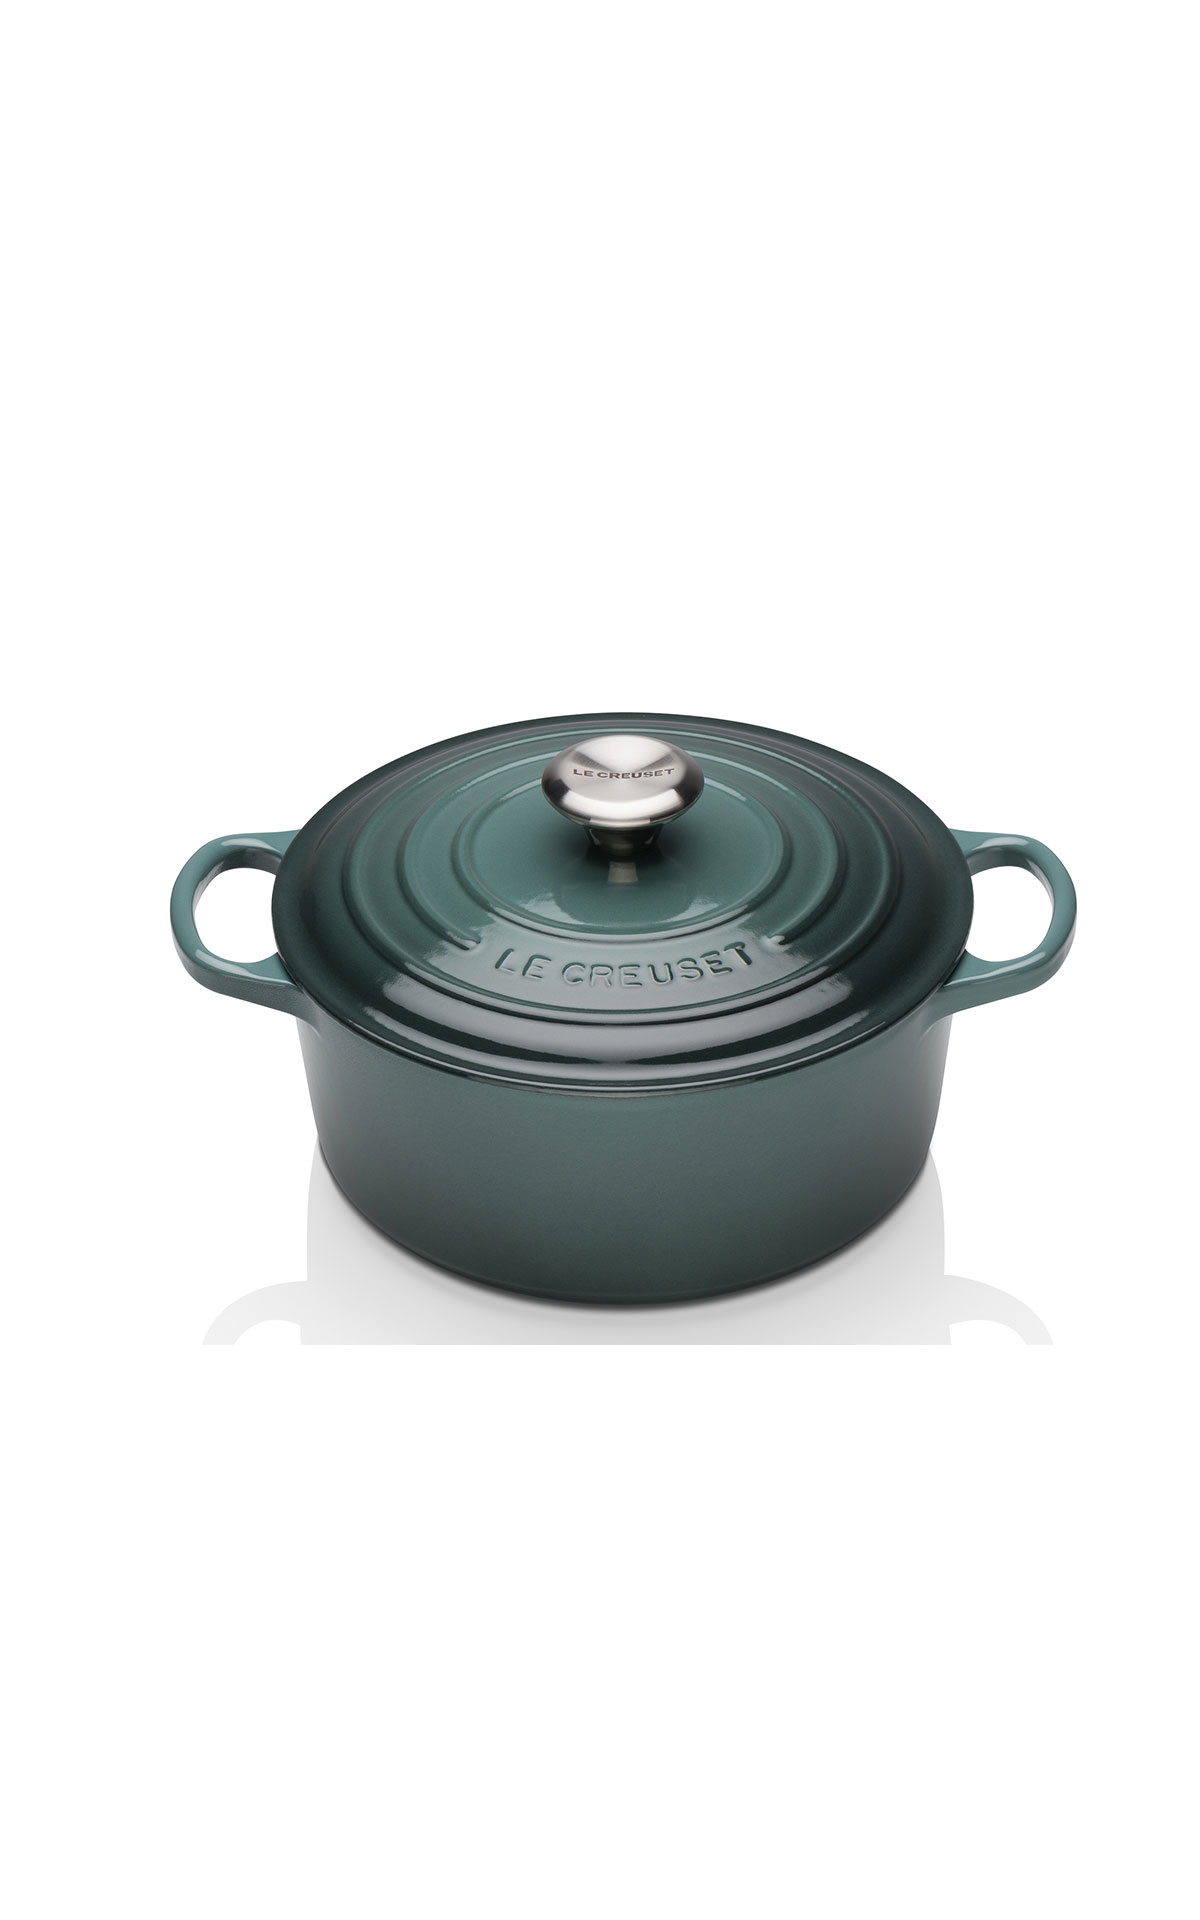 Le Creuset Ocean 24cm round casserole dish from Bicester Village